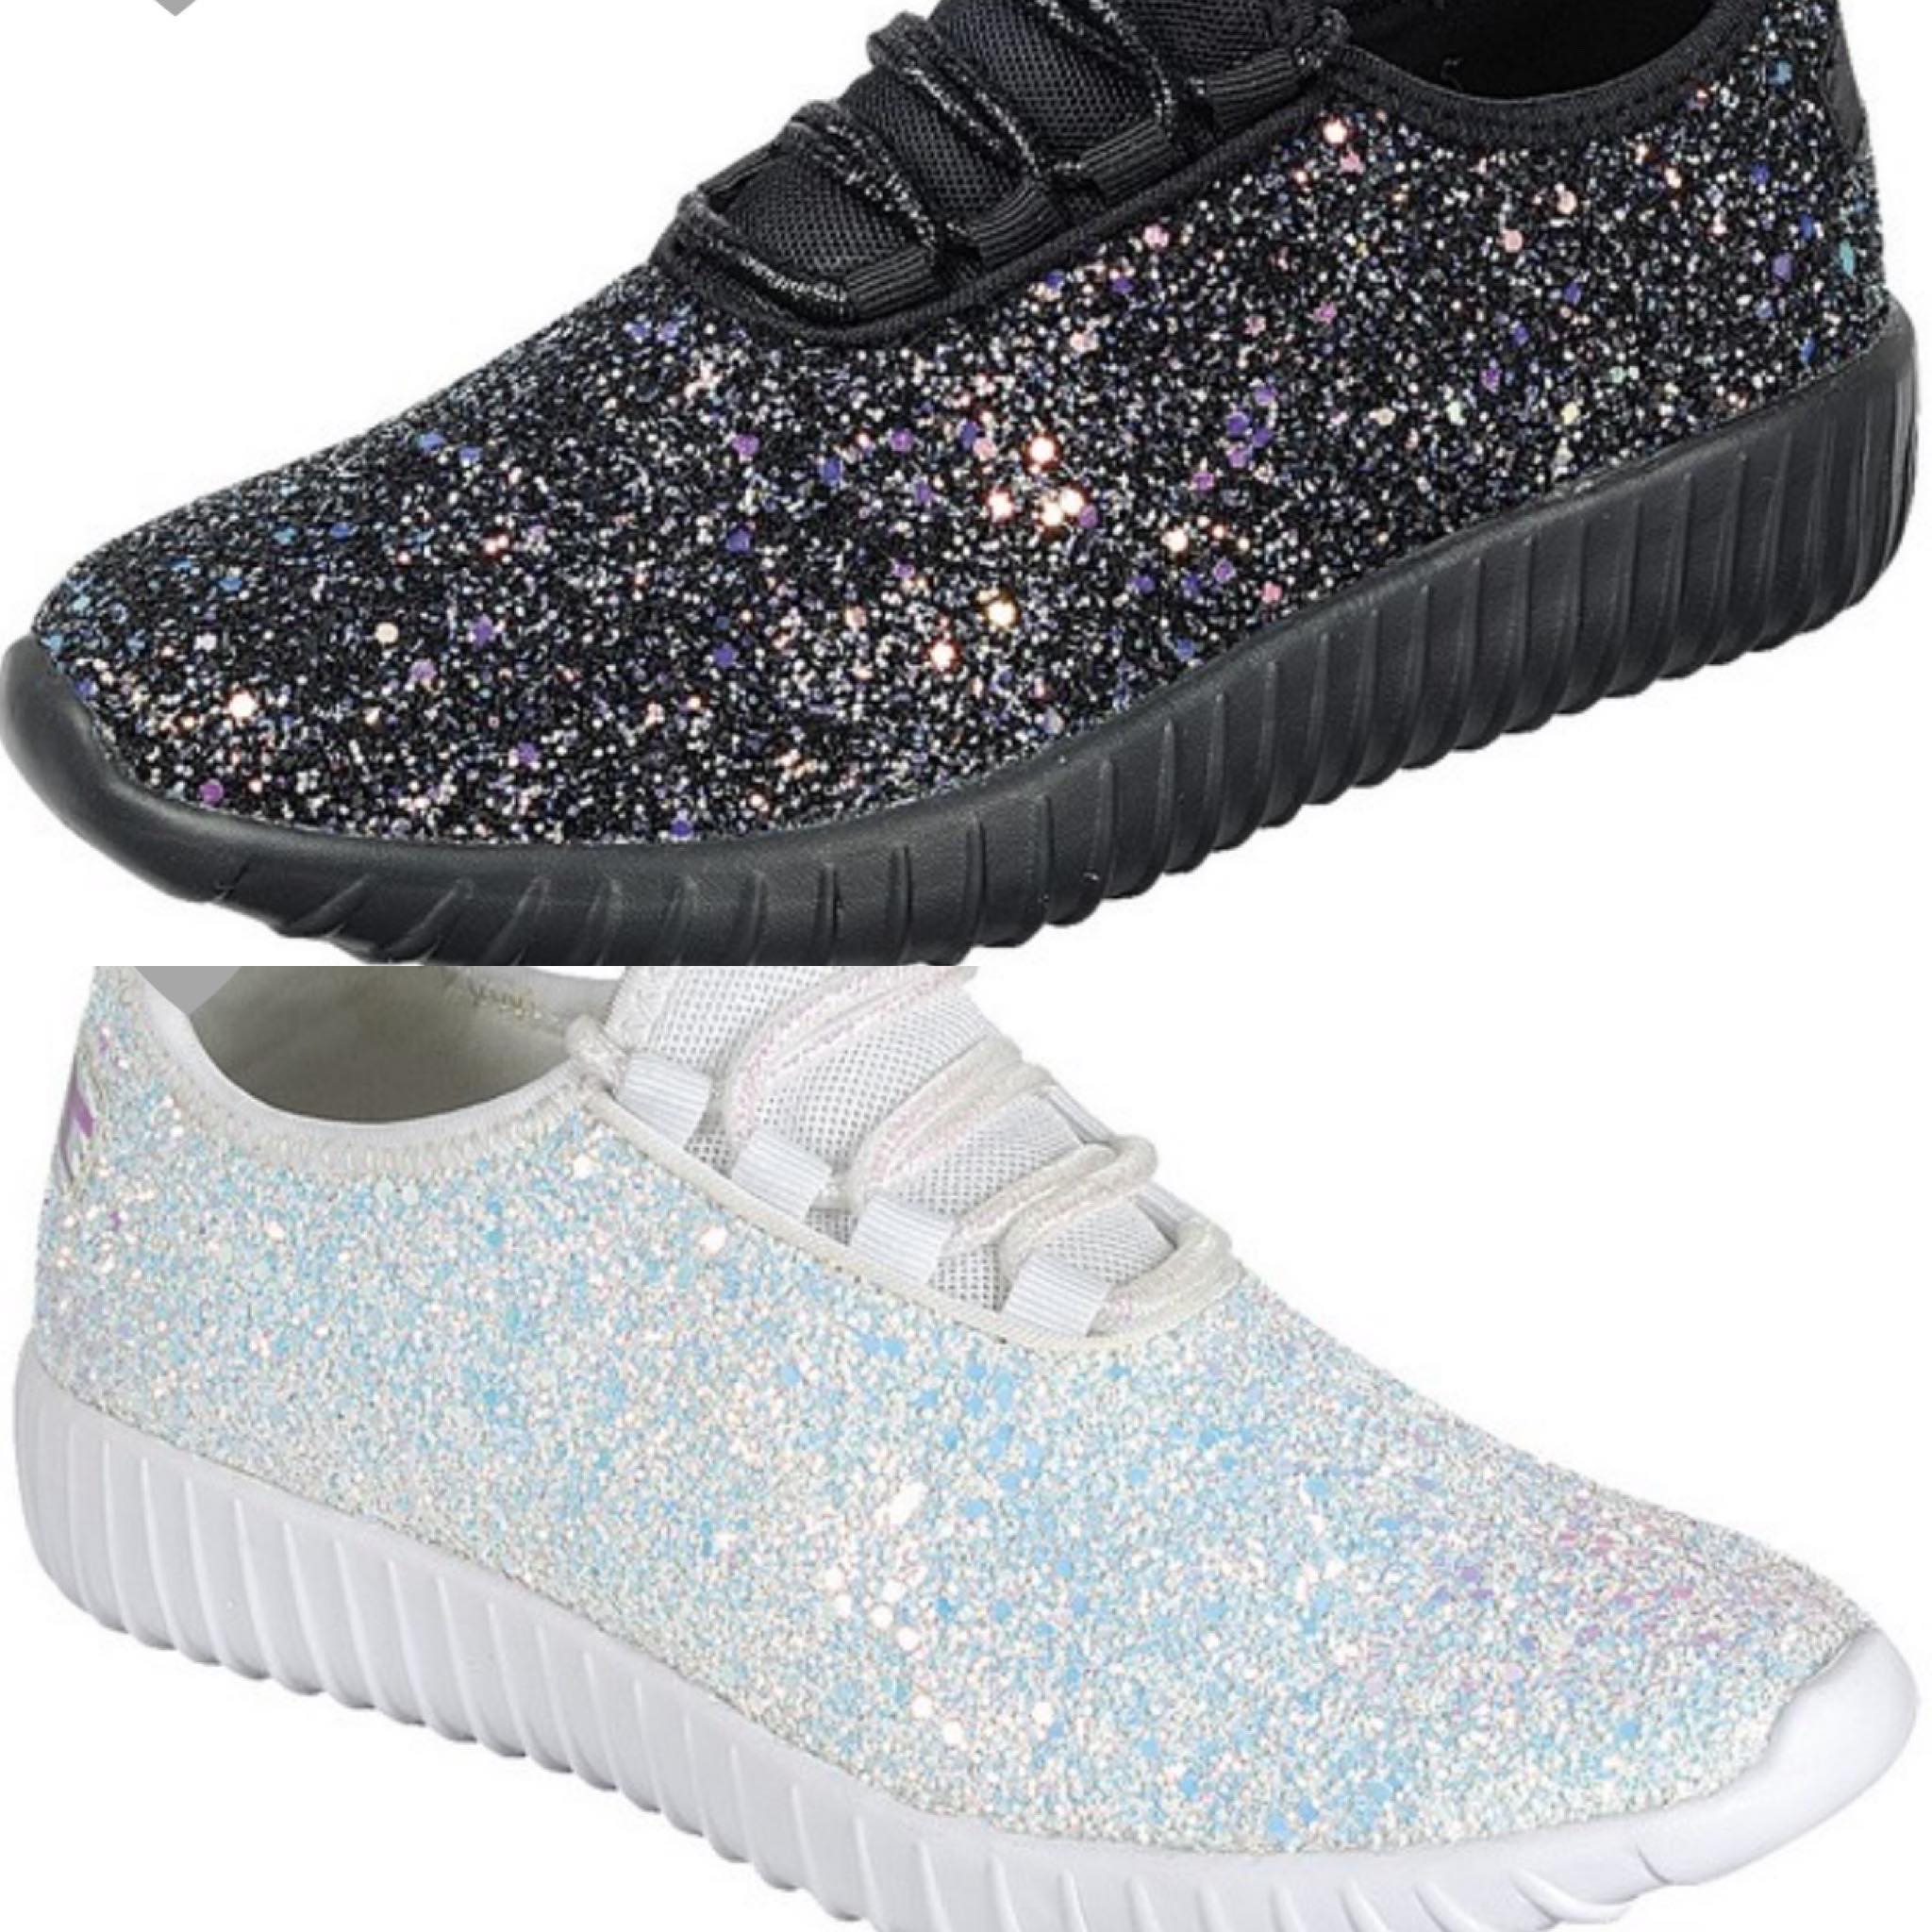 *Glitter Bomb Babe Tennies! Black or White!